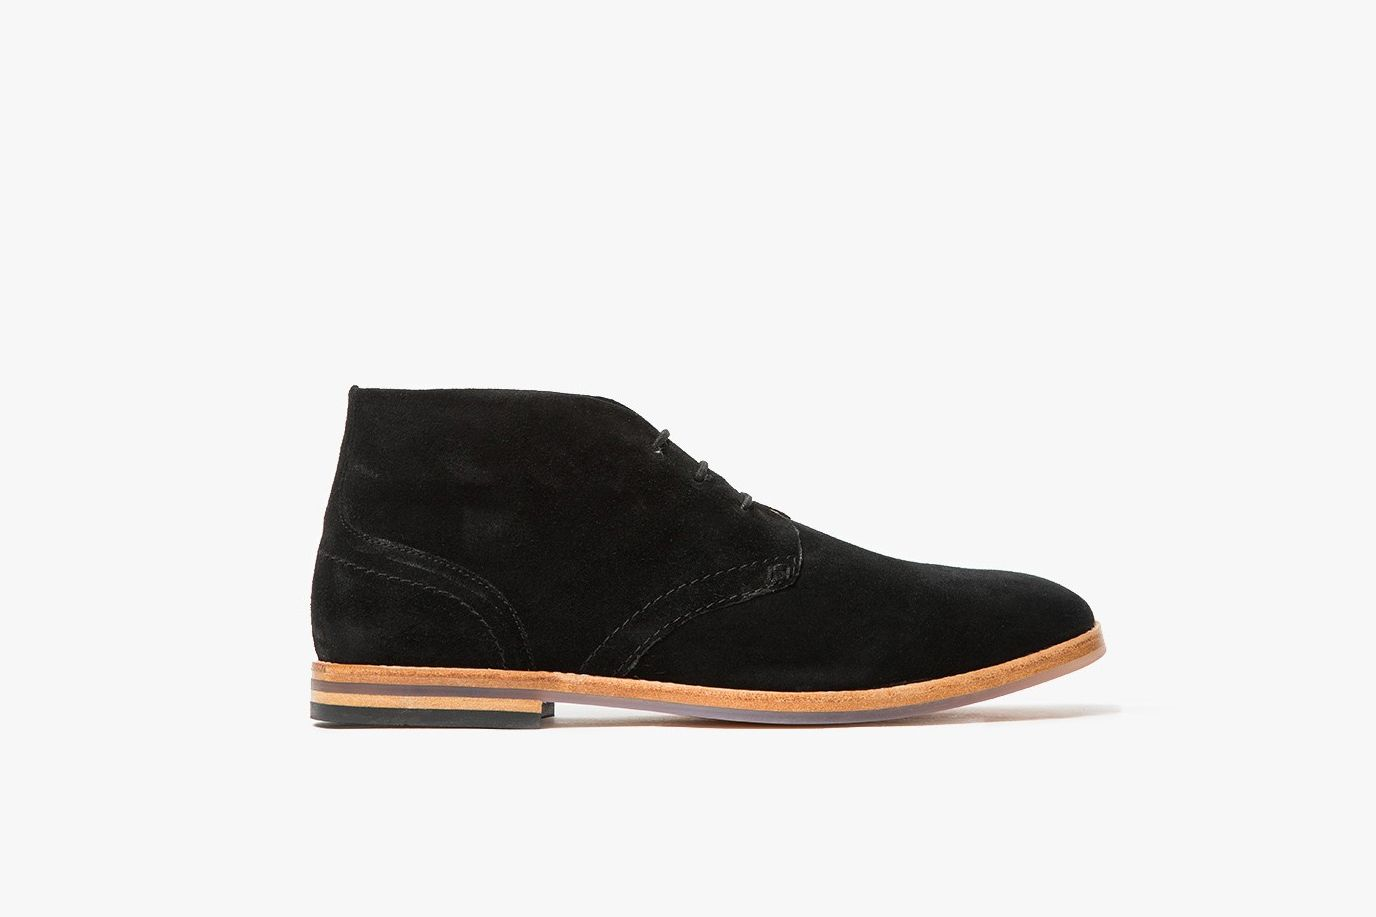 H by Hudson Black Suede Desert Boots